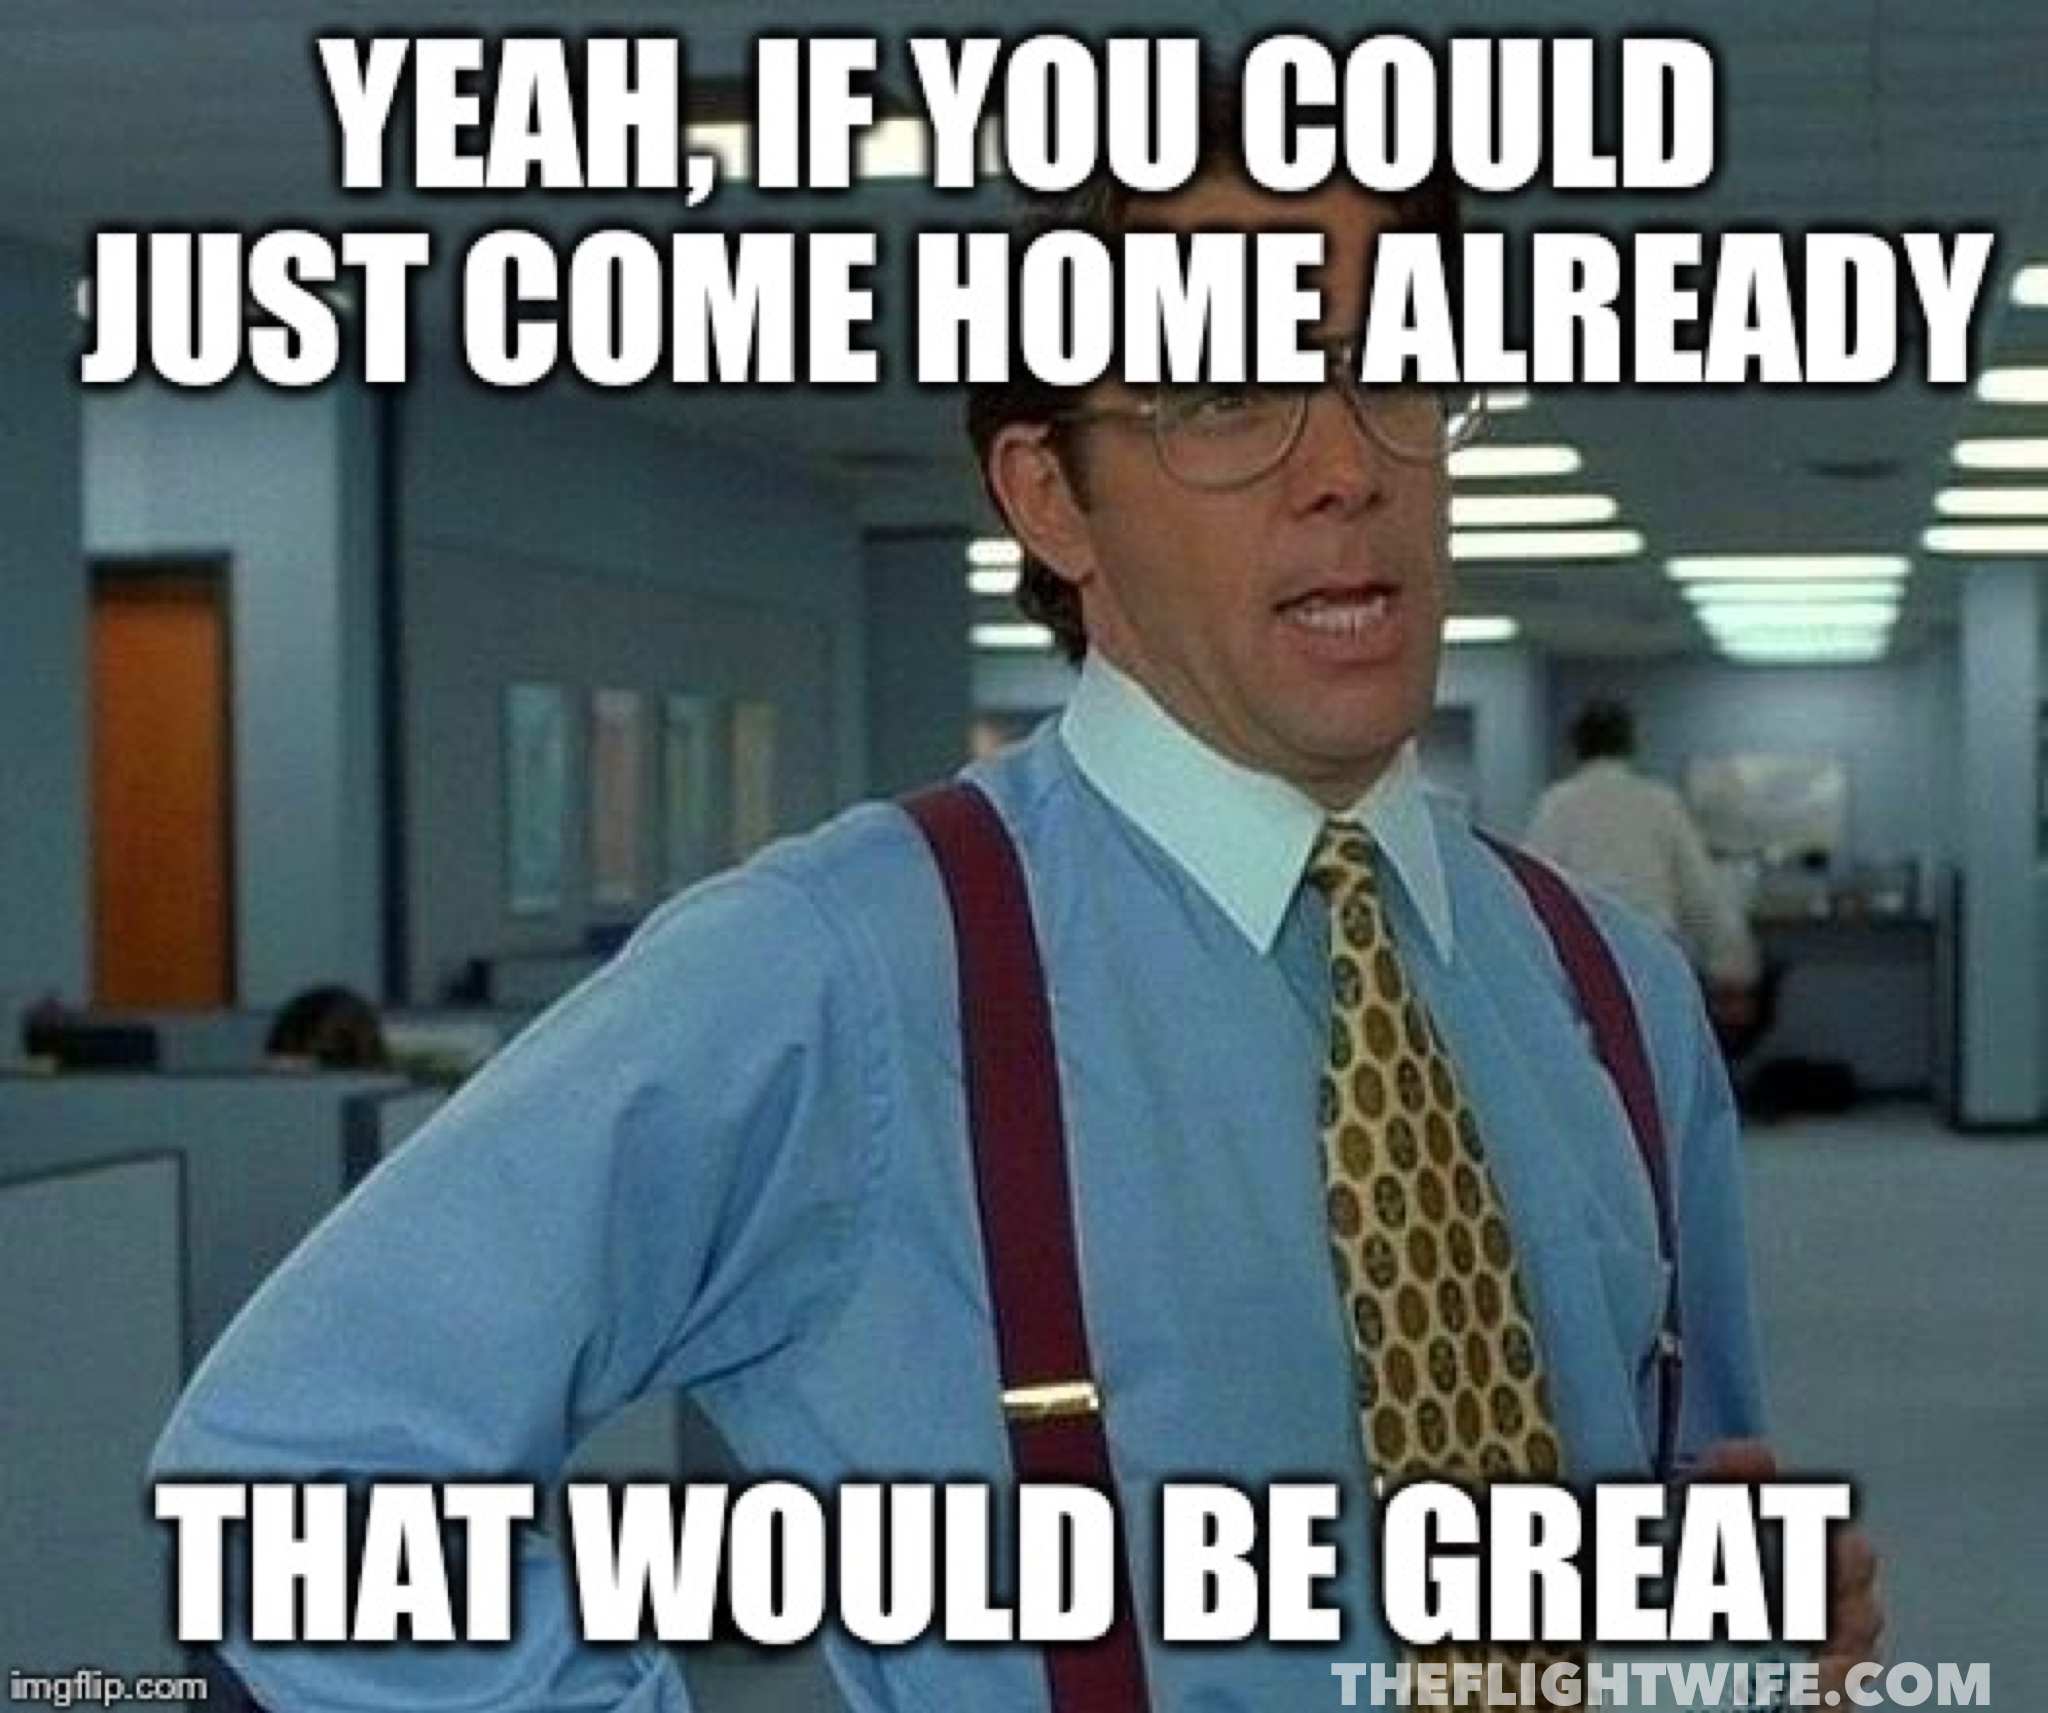 come home 25 memes that sum up pilot wife life perfectly the flight wife